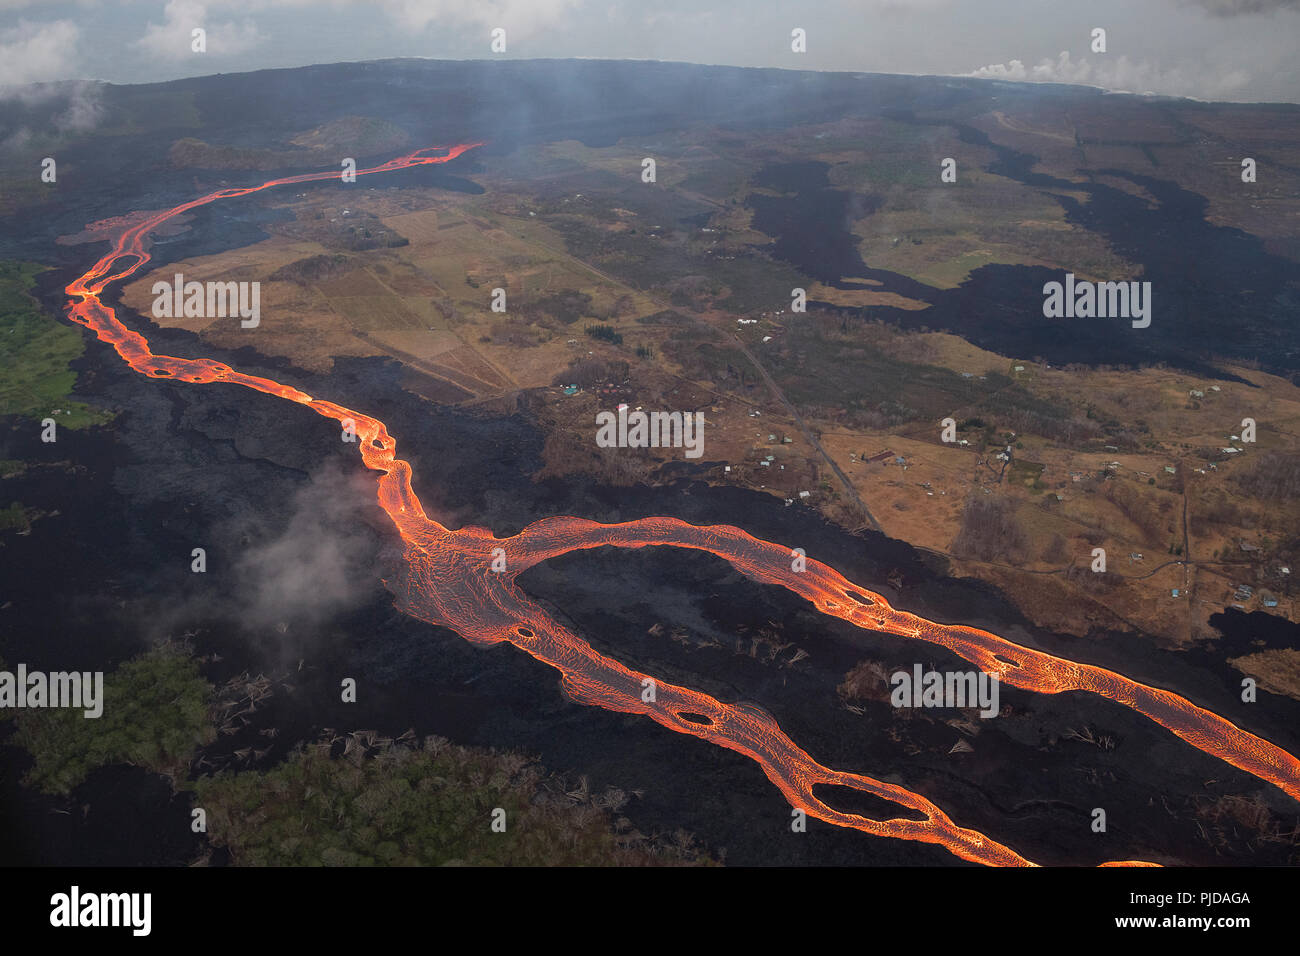 river of lava drains from Kilauea Volcano east rift zone near Pahoa, Hawaii through Kapoho toward ocean entry at Ahalanui on the Big Island - Stock Image